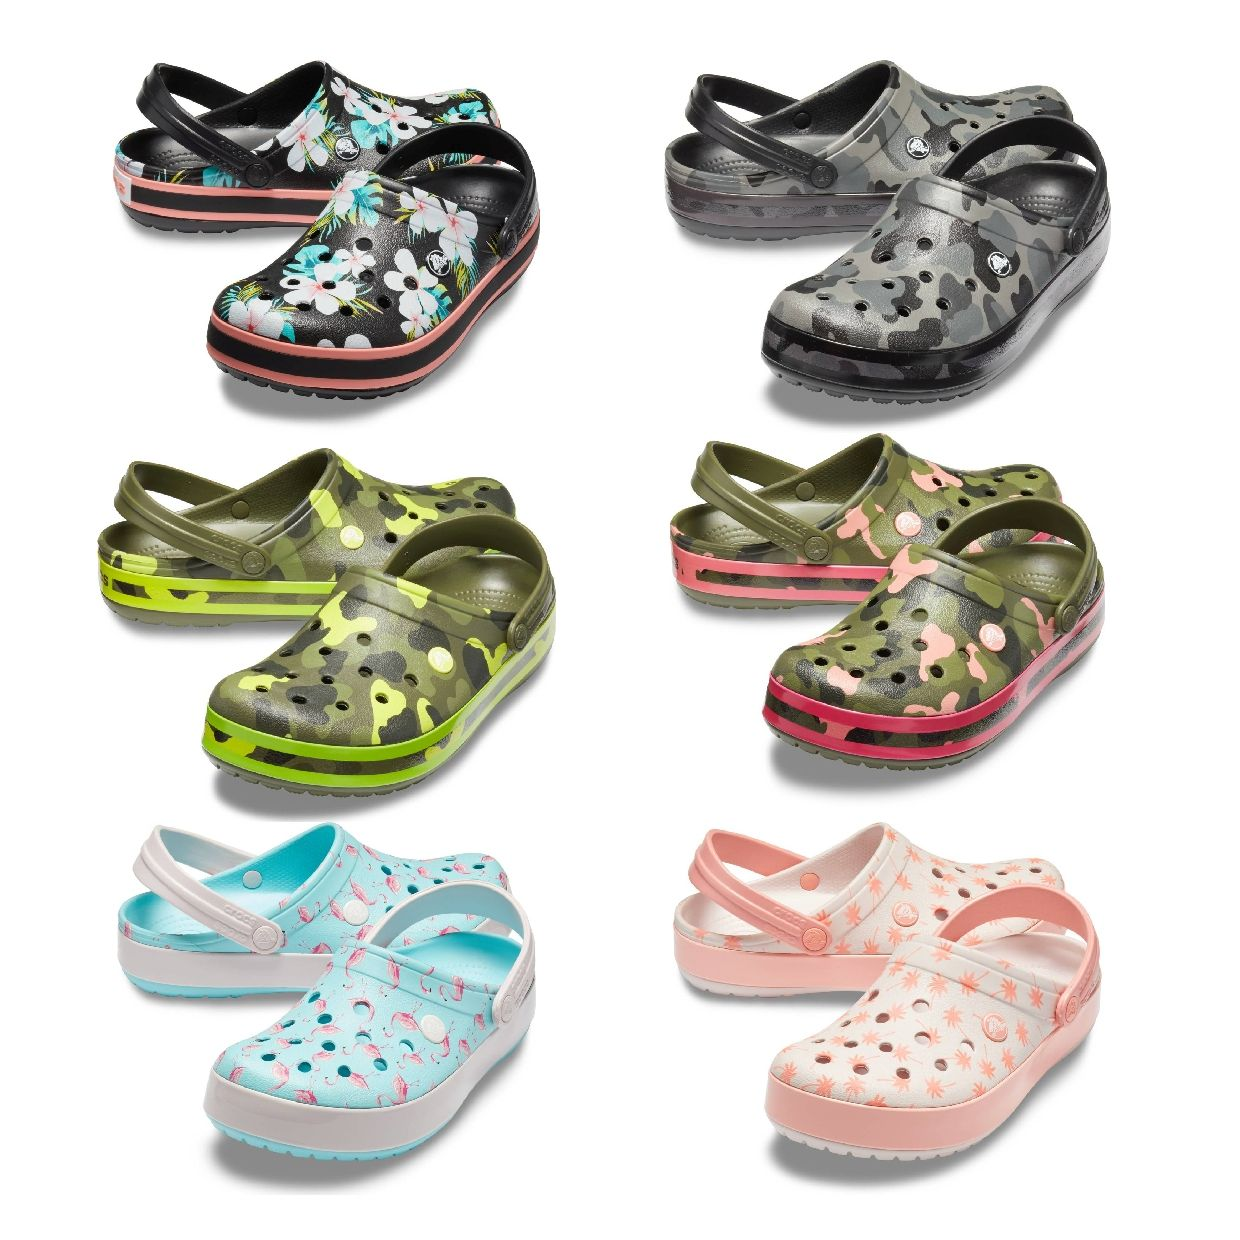 Crocs Crocband Seasonal Graphic Clog Clogs HausSynthetik Unisex FS19